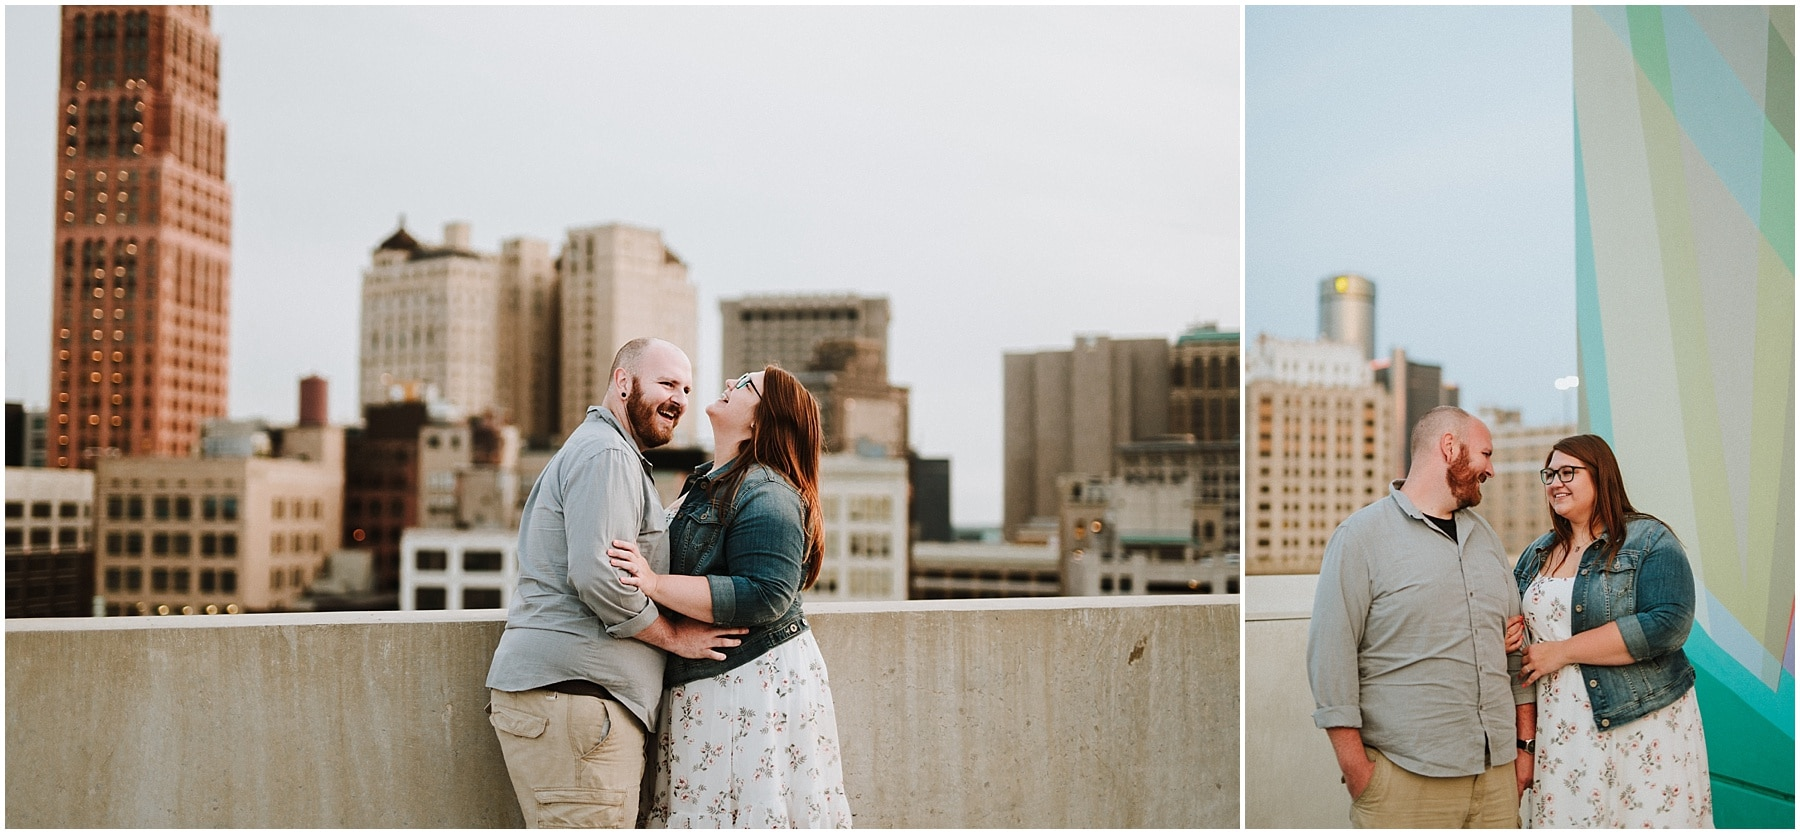 Downtown Detroit Dequindre Cut engagement session